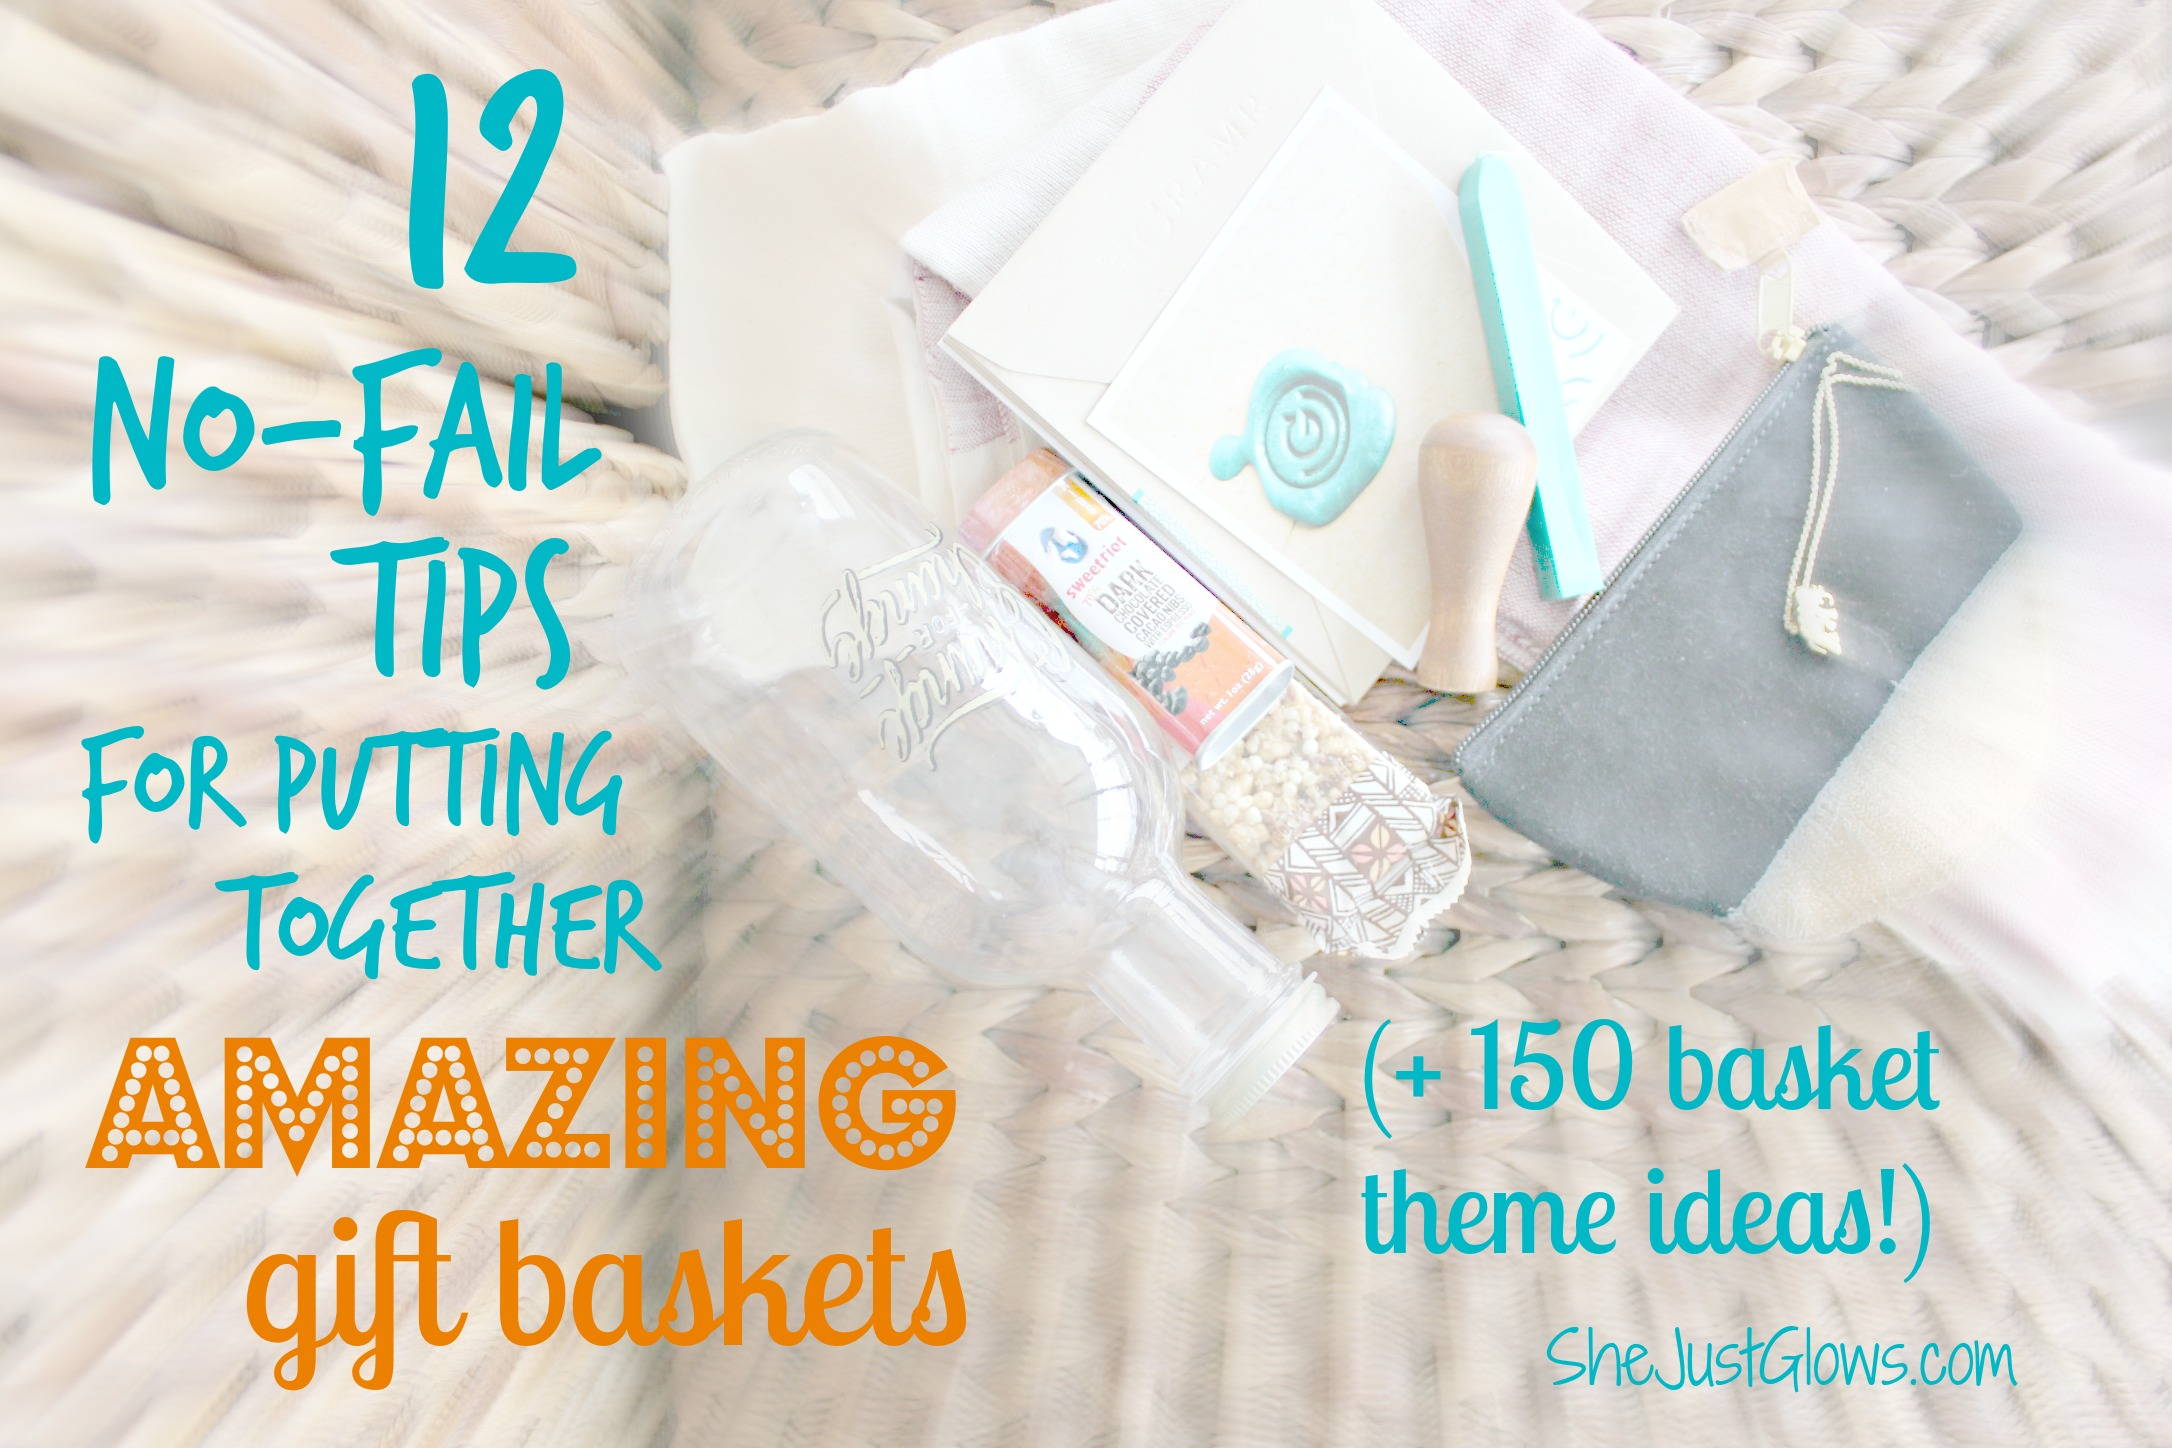 12 No-Fail Tips for Putting Together Amazing Gift Baskets (+150 Basket Theme Ideas!) SheJustGlows.com